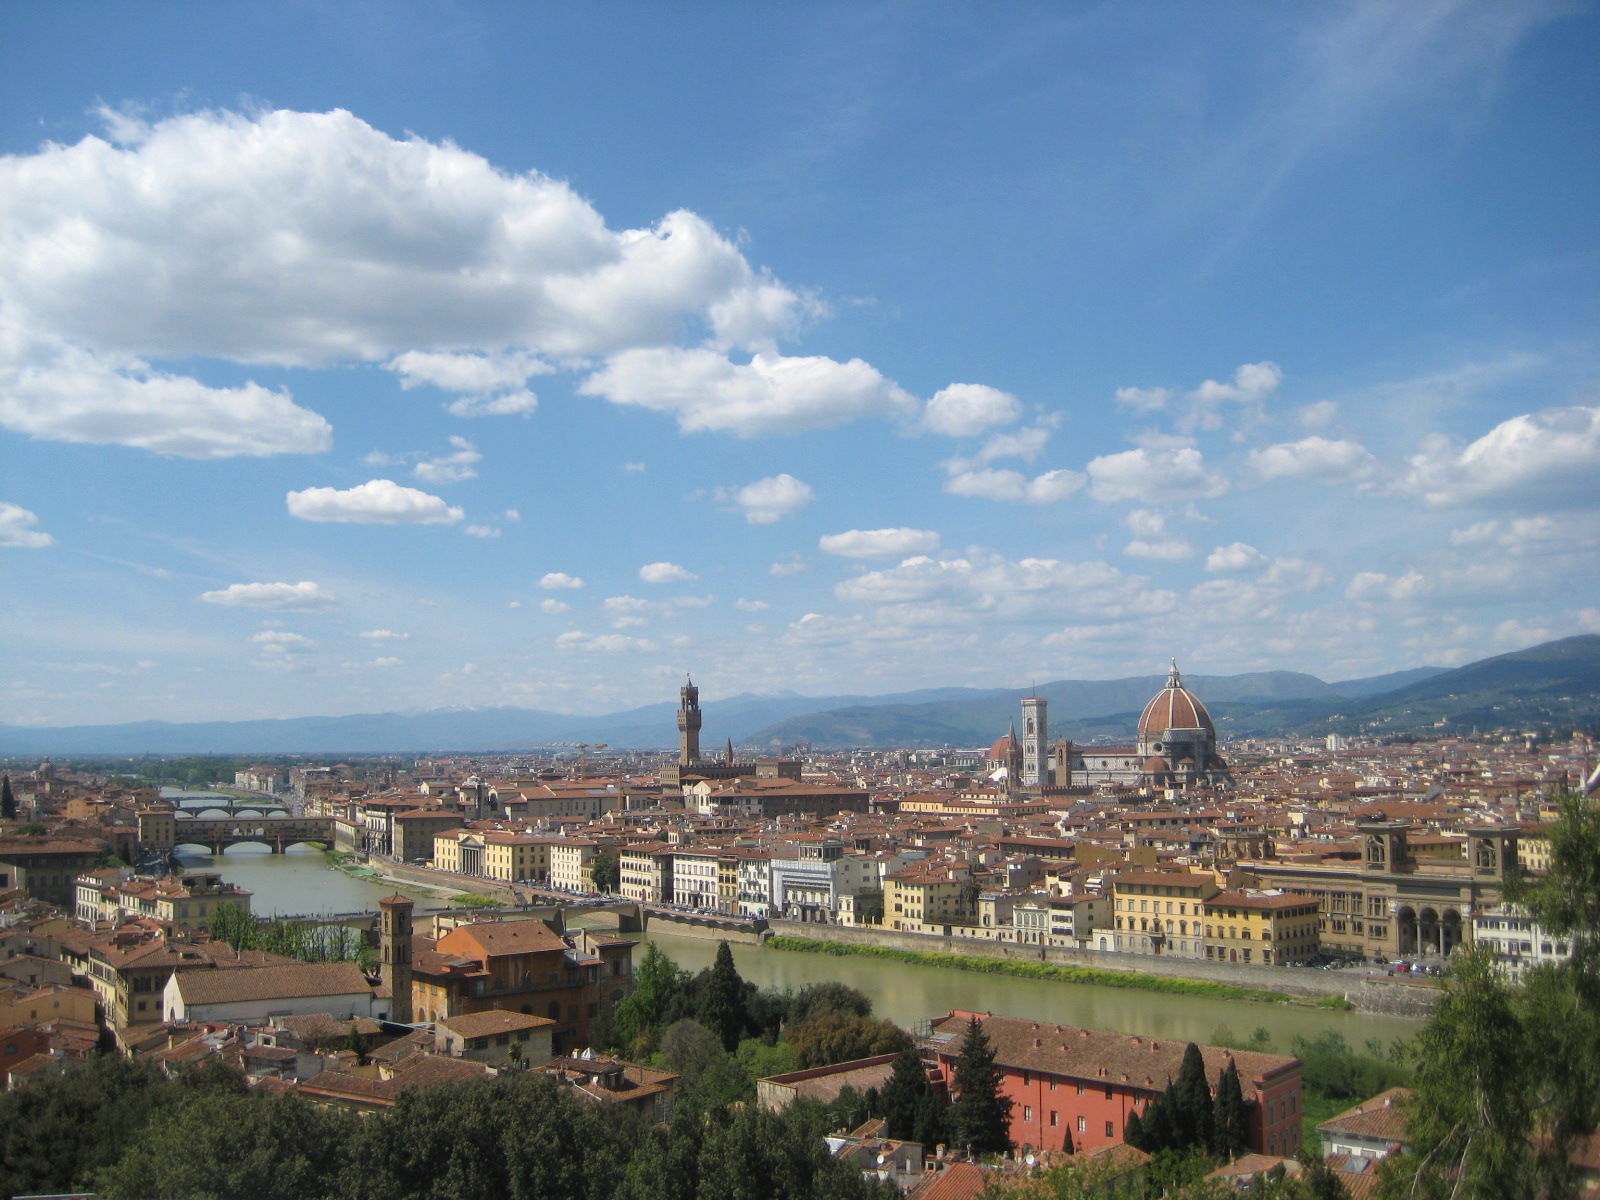 The beautiful skyline that is possible to see with only 24 hours in Florence